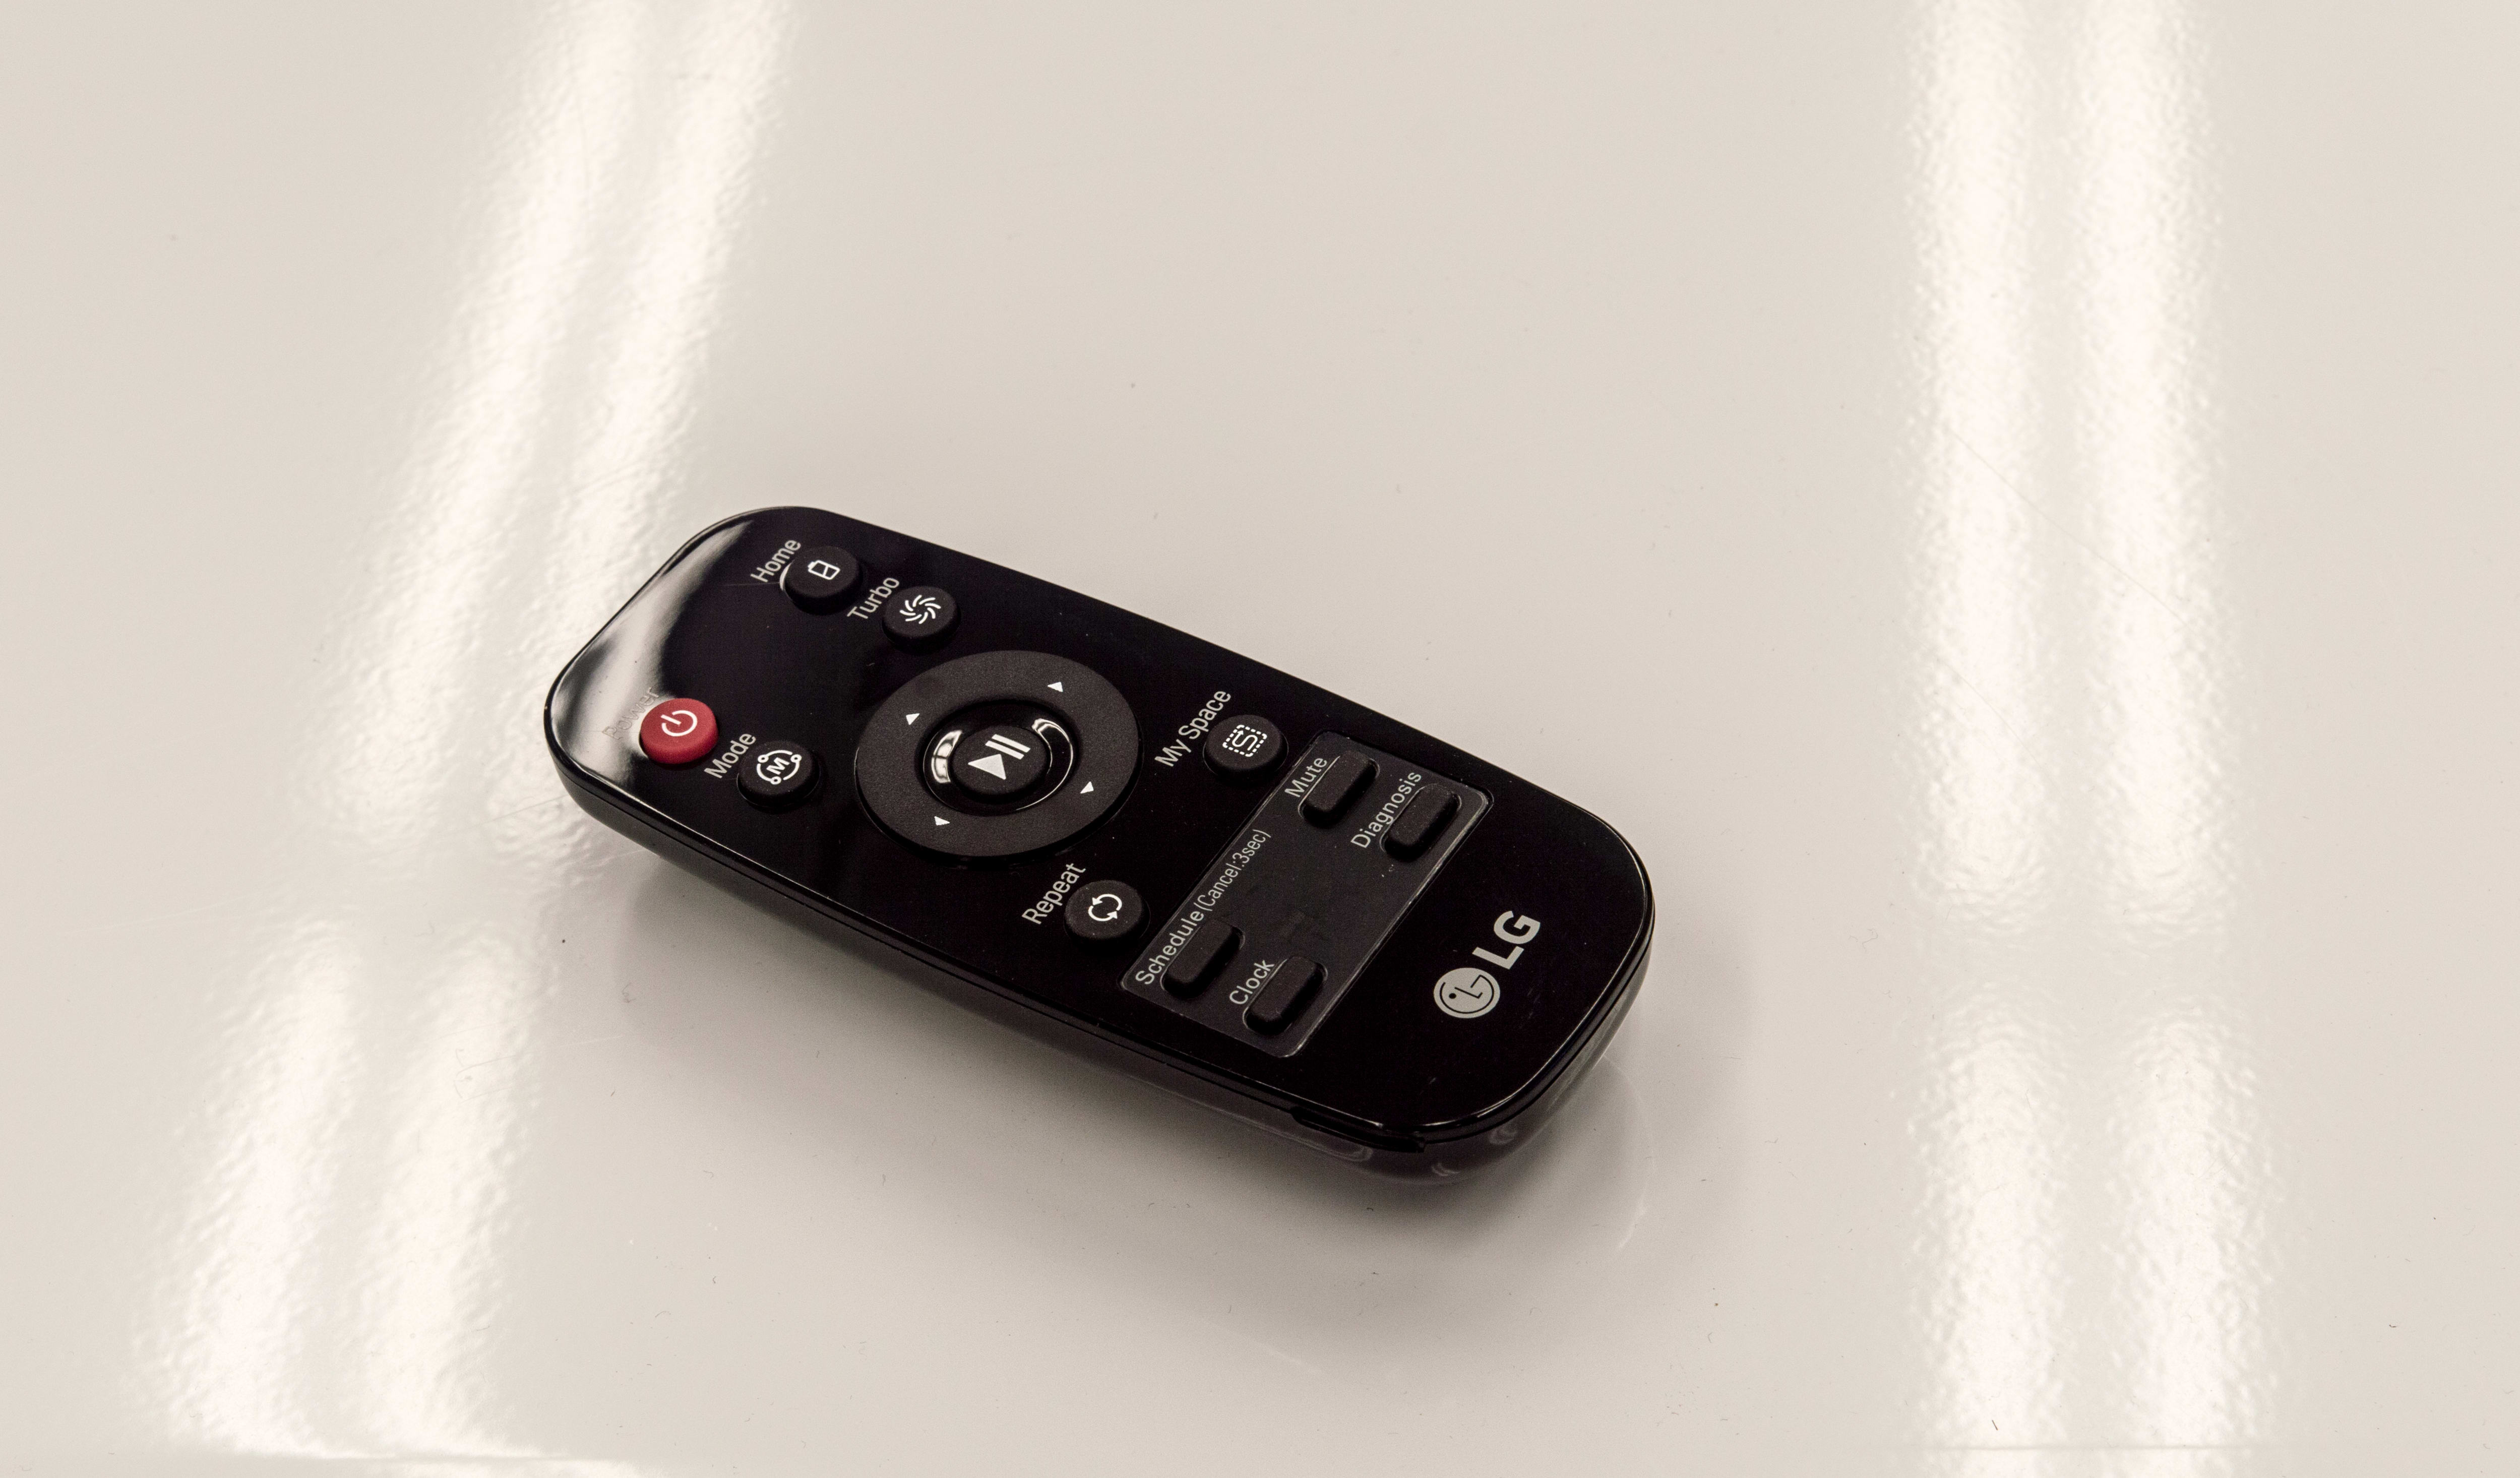 The LG Hom-Bot's remote is about as concise as it gets.